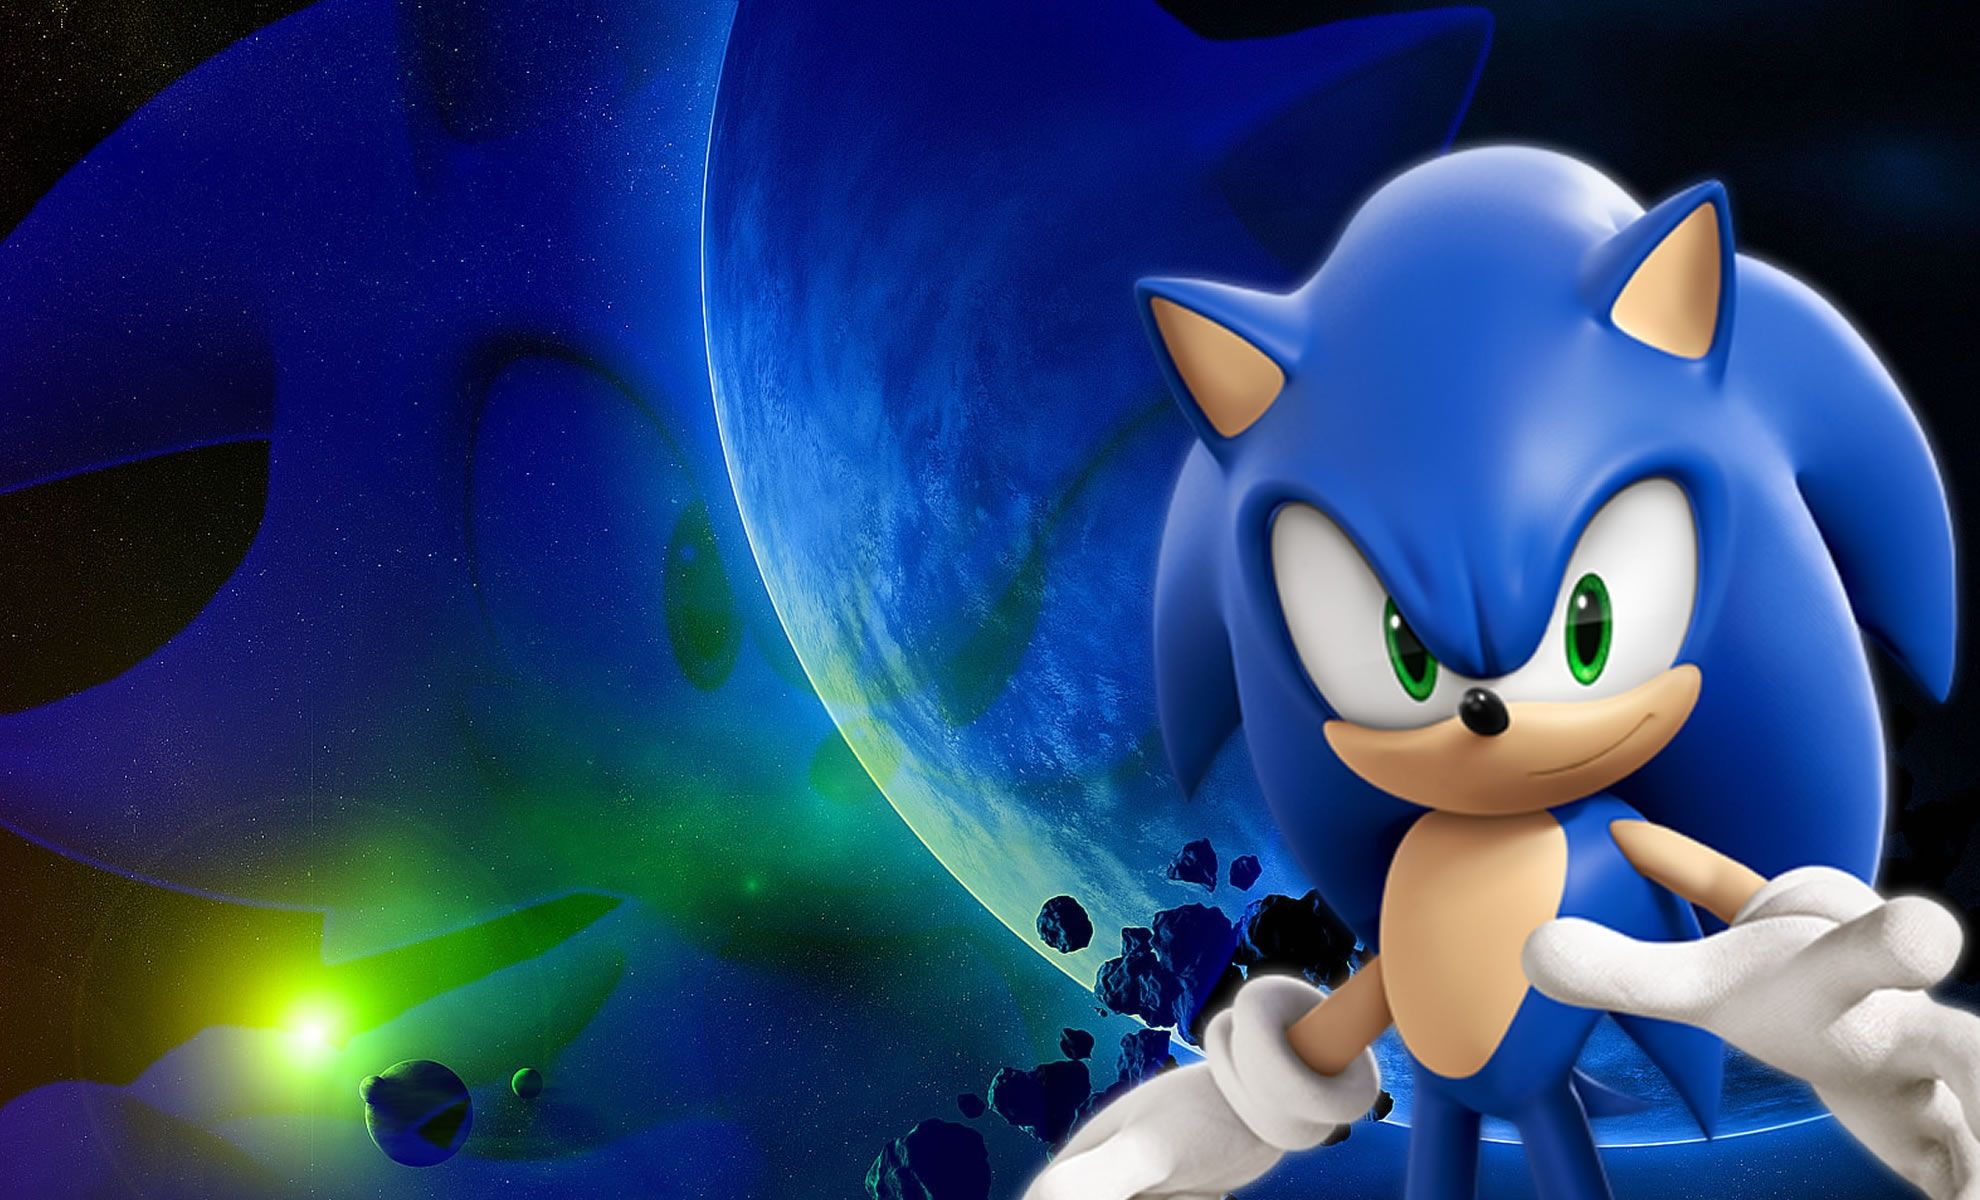 Best 52 Sonic The Hedgehog And Friends Wallpaper On Within Sonic Wallpapers Windows 10 Fantasias Infantis Fantasias Infantil